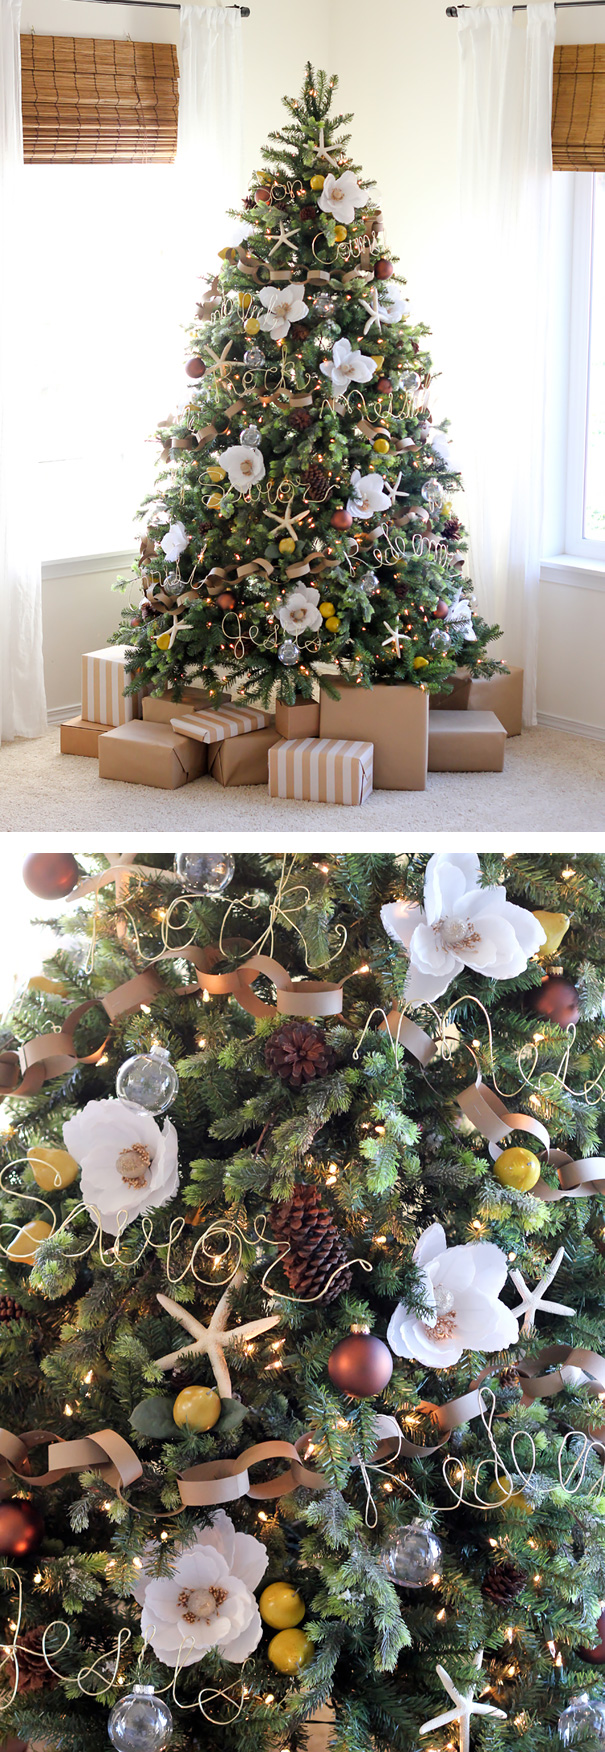 People Are Decorating Their Christmas Trees With Flowers And The Results Are4